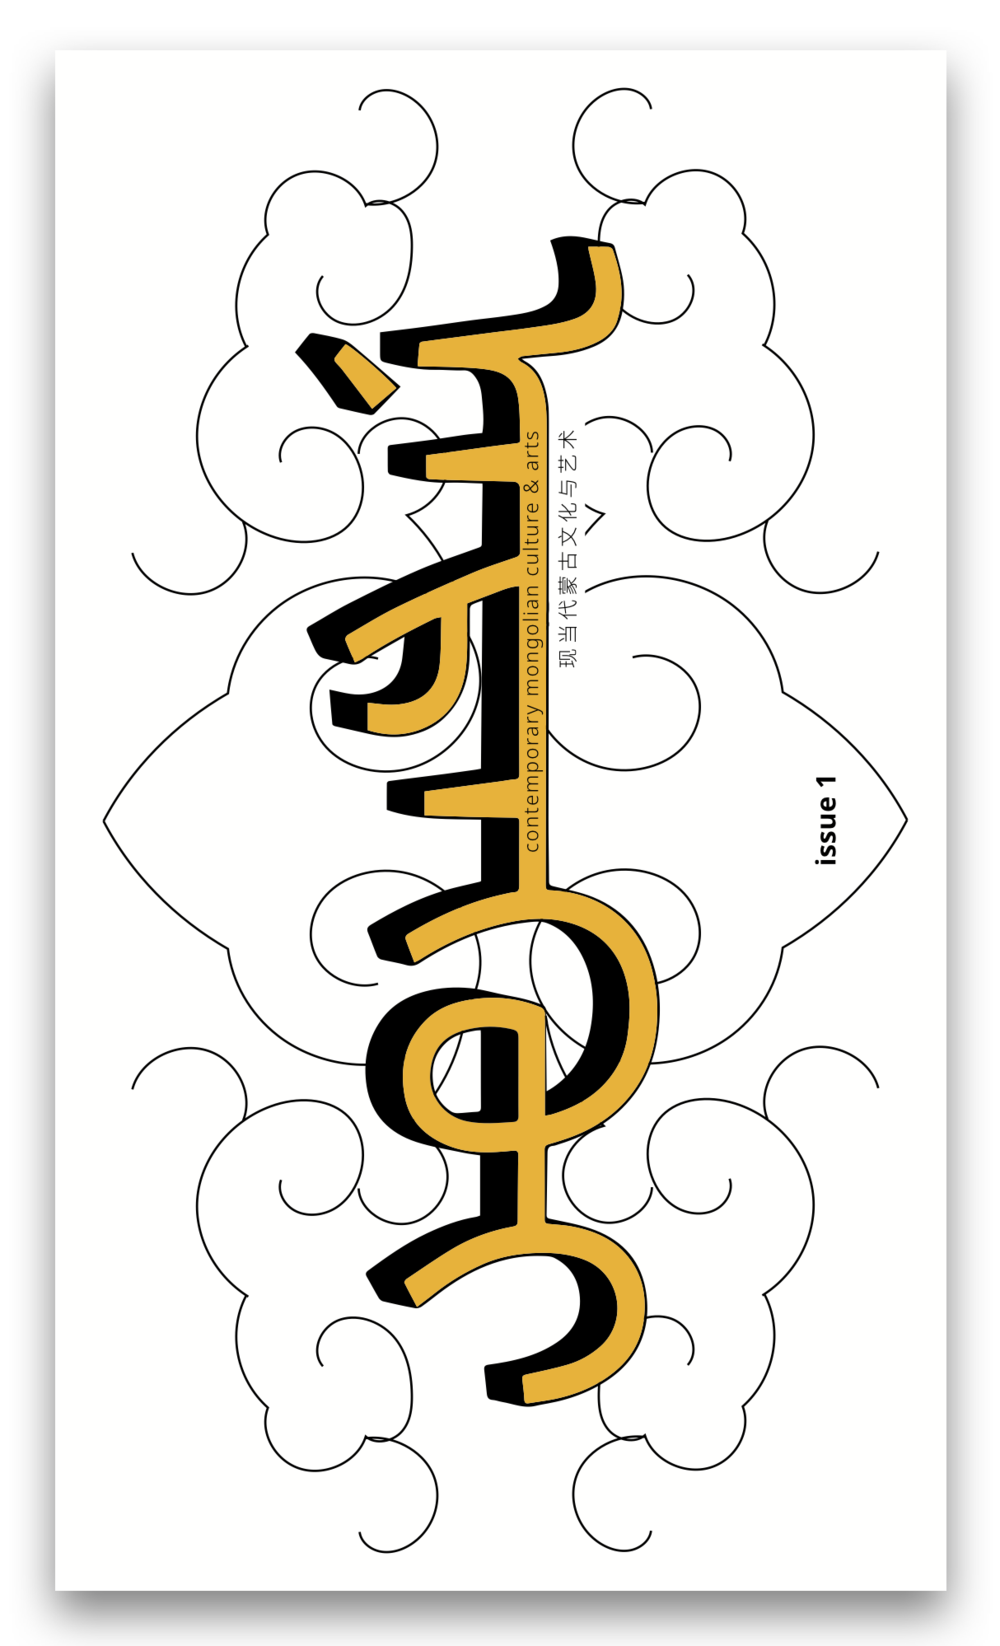 Nerehui Magazine - This magazine is an imaginary space where Mongolian Script is the dominate language in this world. Other languages like English, Chinese and Cyrillic Mongolian needs to be vertically typed to adapt to the traditional Mongolian Script typing custom.Due to the decline of usage of Mongolian language in Inner Mongolia, the intention for this magazine is to be served as media path and catalyst to raise Mongolian people's attention on treasuring our own culture. This magazine focuses on contemporary Mongolian culture by providing a view through arts in various subjects.